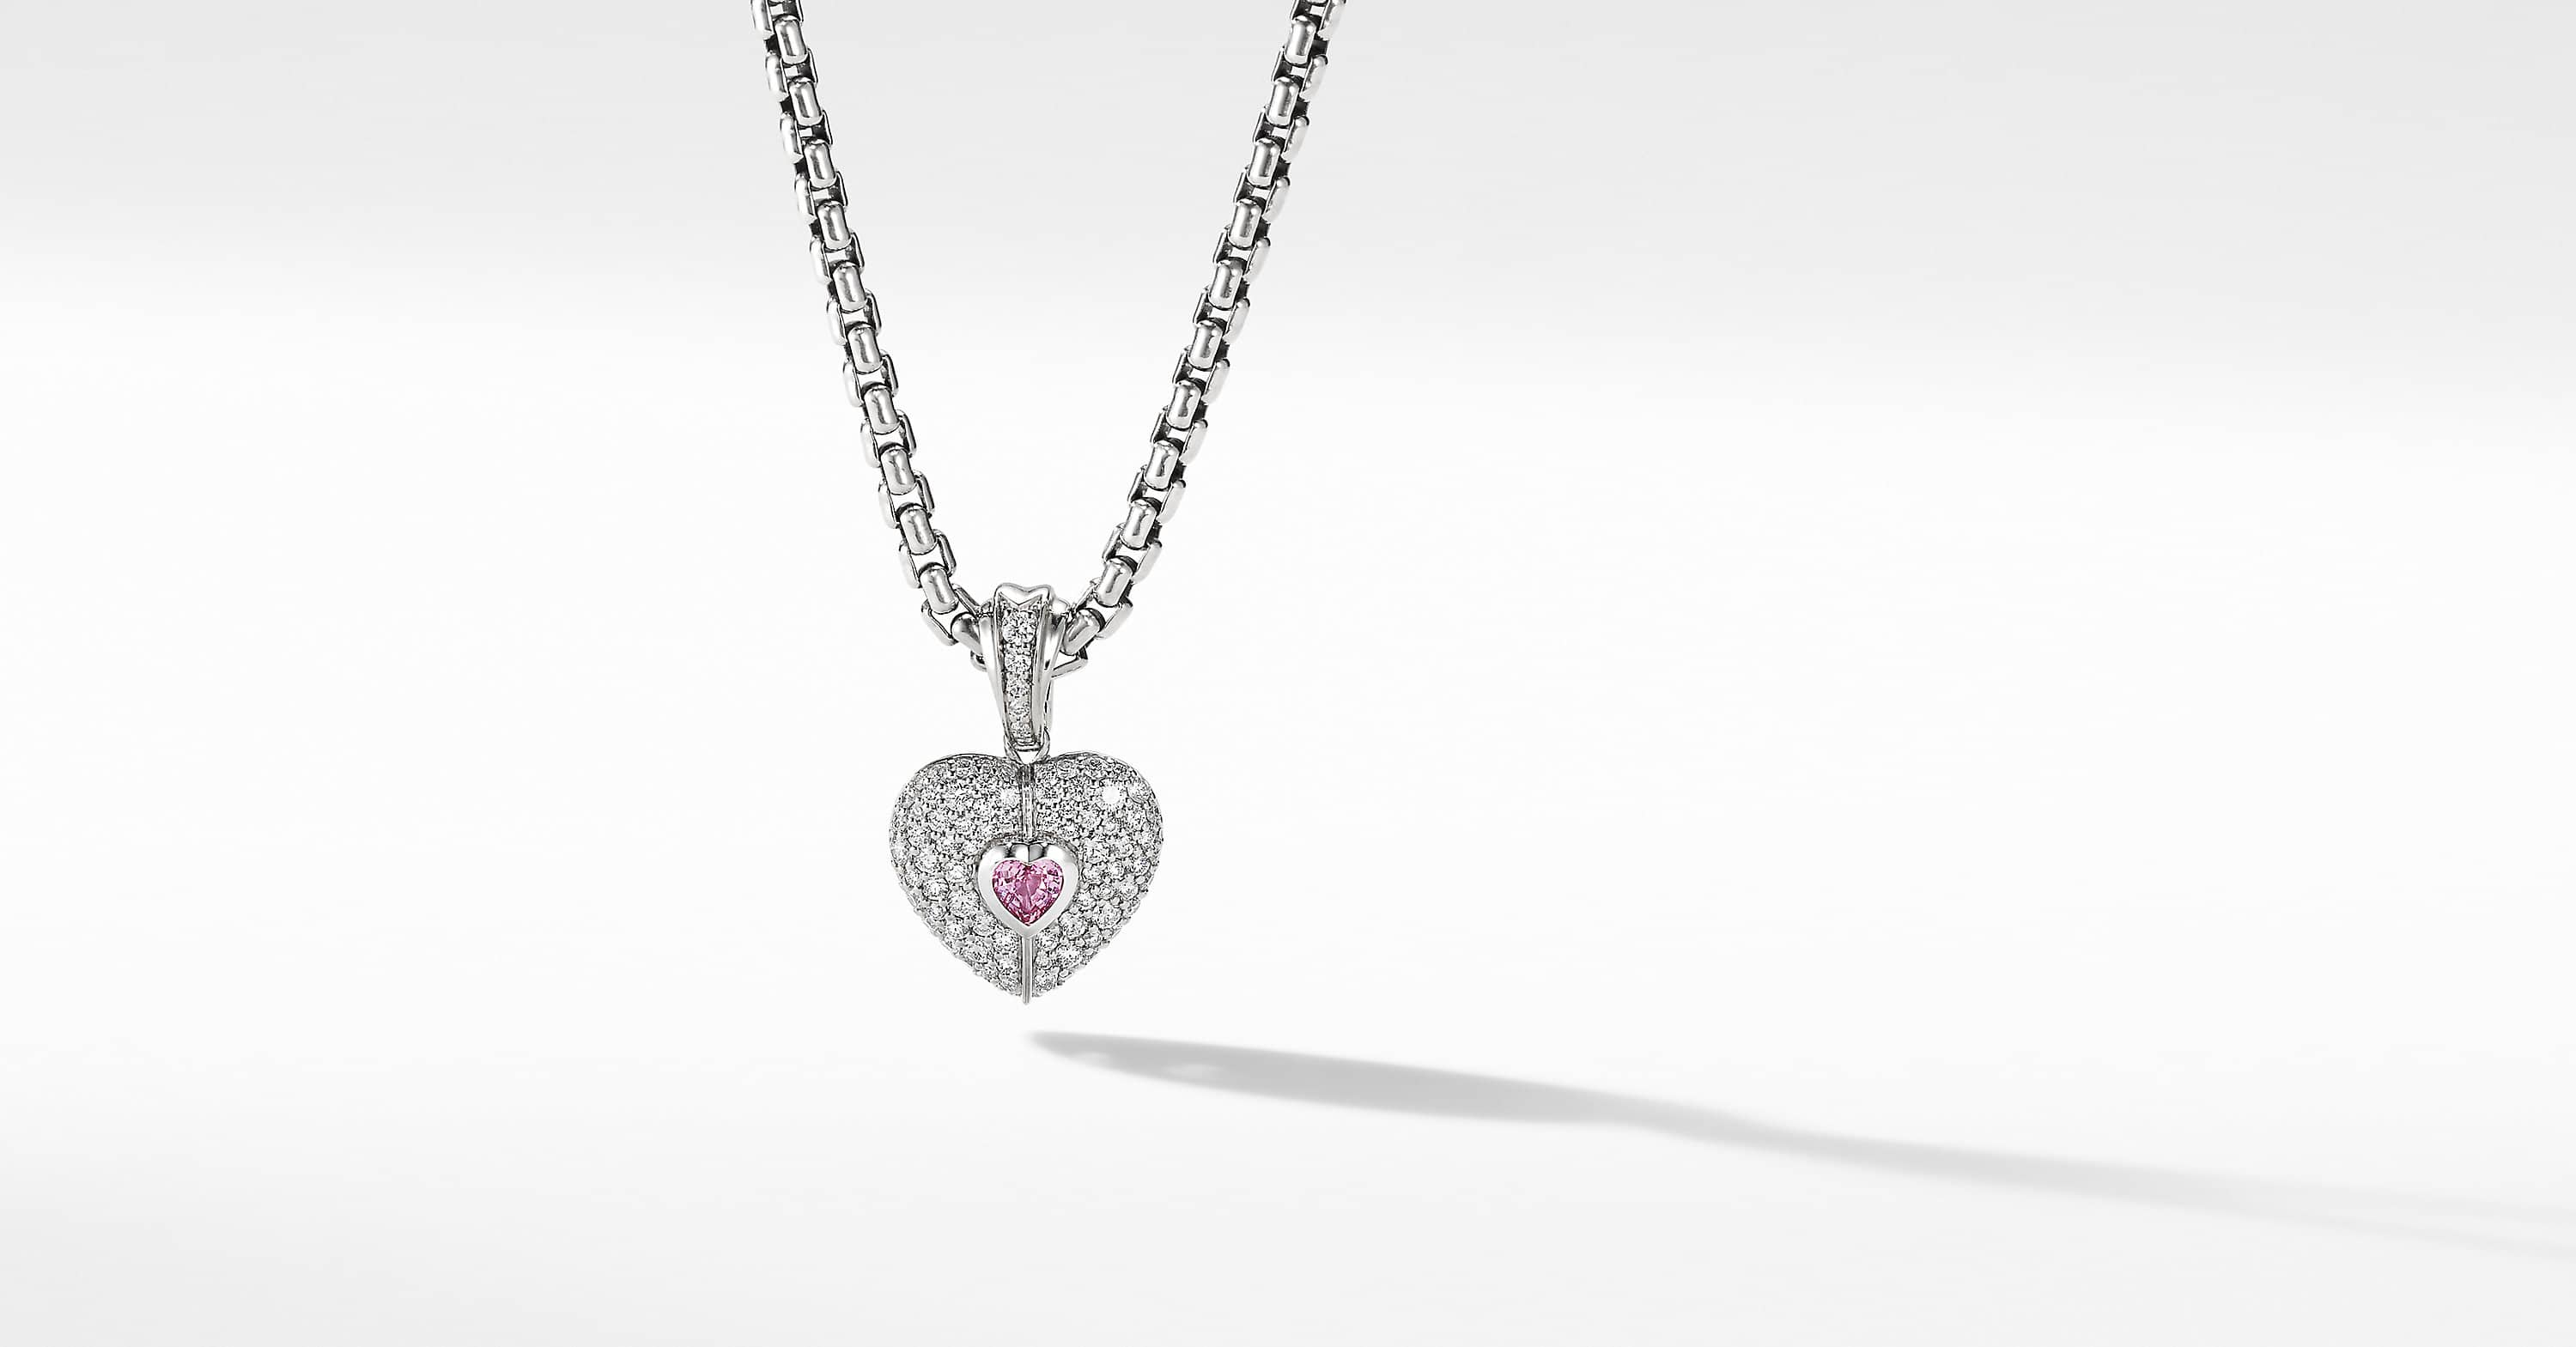 Heart Amulet in 18K White Gold with Pavé